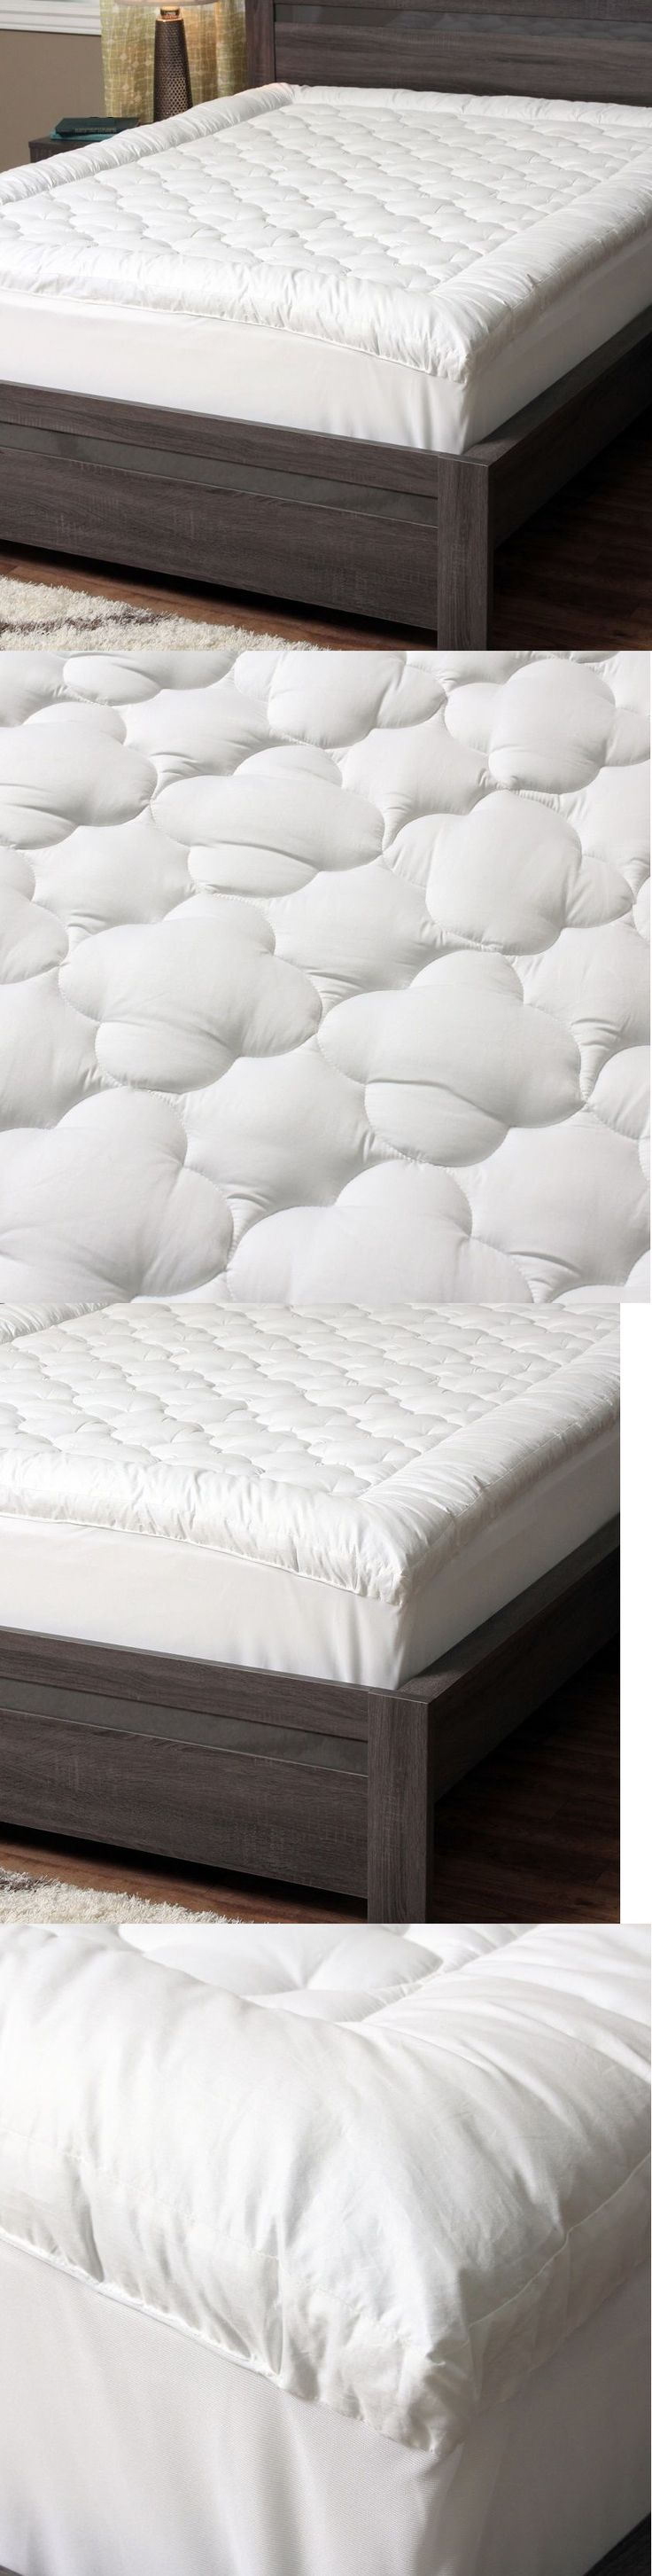 Mattress Pads And Feather Beds 175751 Pillow Top Topper Queen Size Pad Hypoallergenic Cover